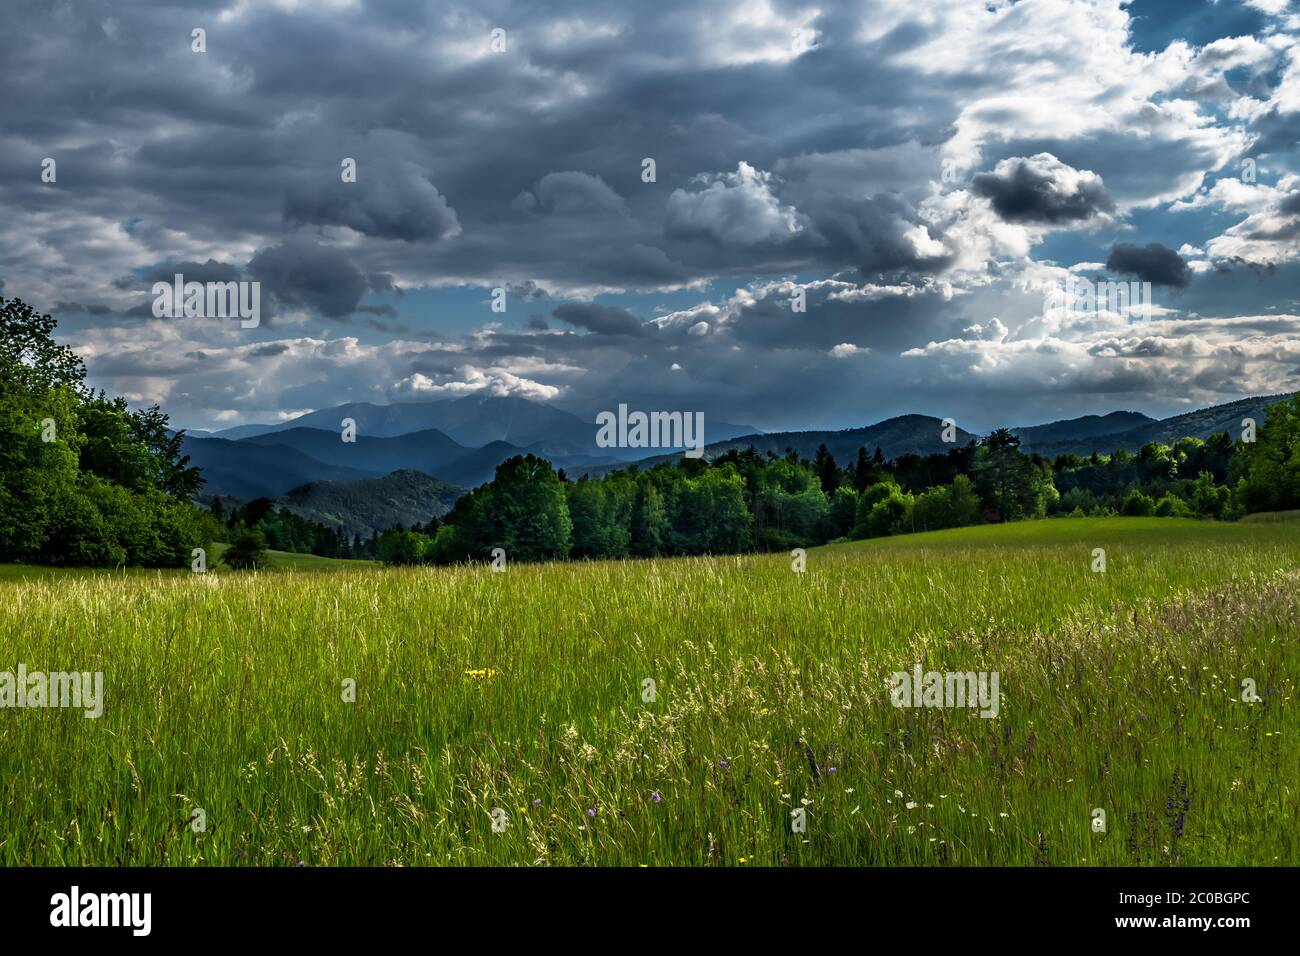 Mountains Of Alps And Rural Landscape In Austria Stock Photo